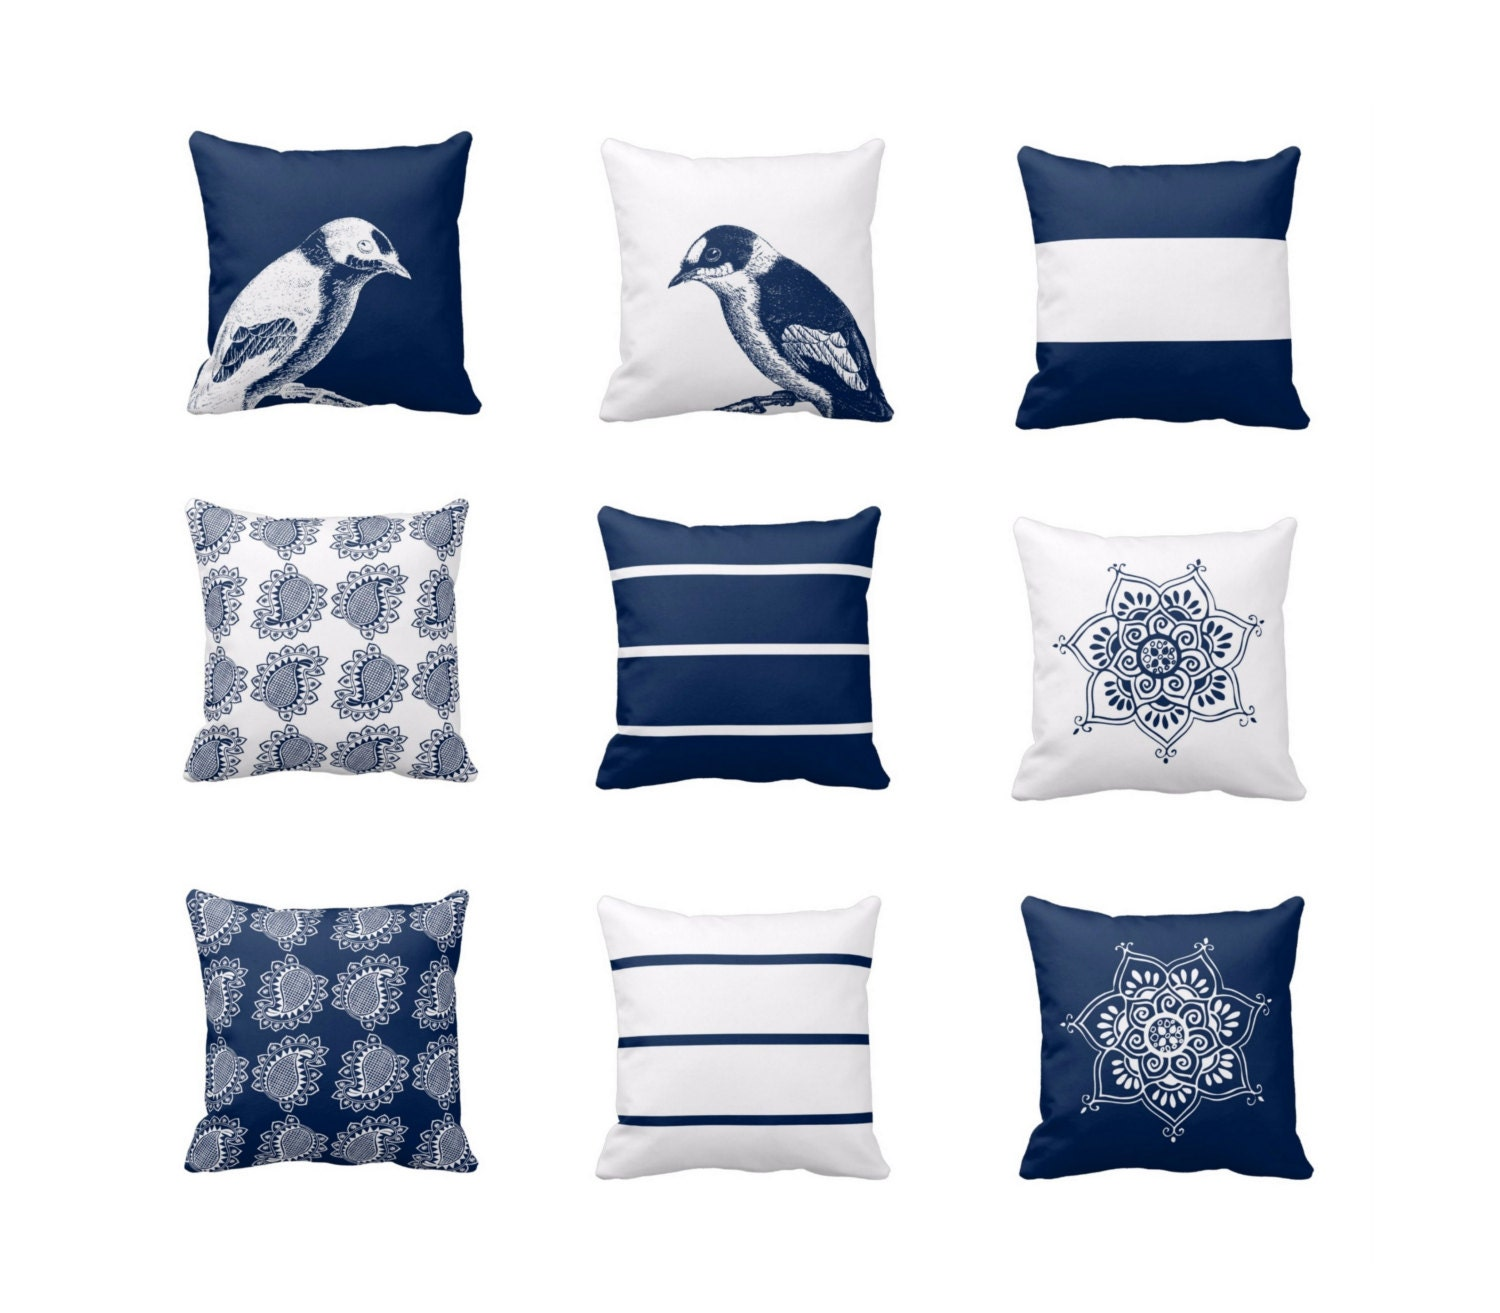 Throw Pillows For Navy Blue Couch : Navy White Throw Pillow Covers Navy Blue White Decor Modern